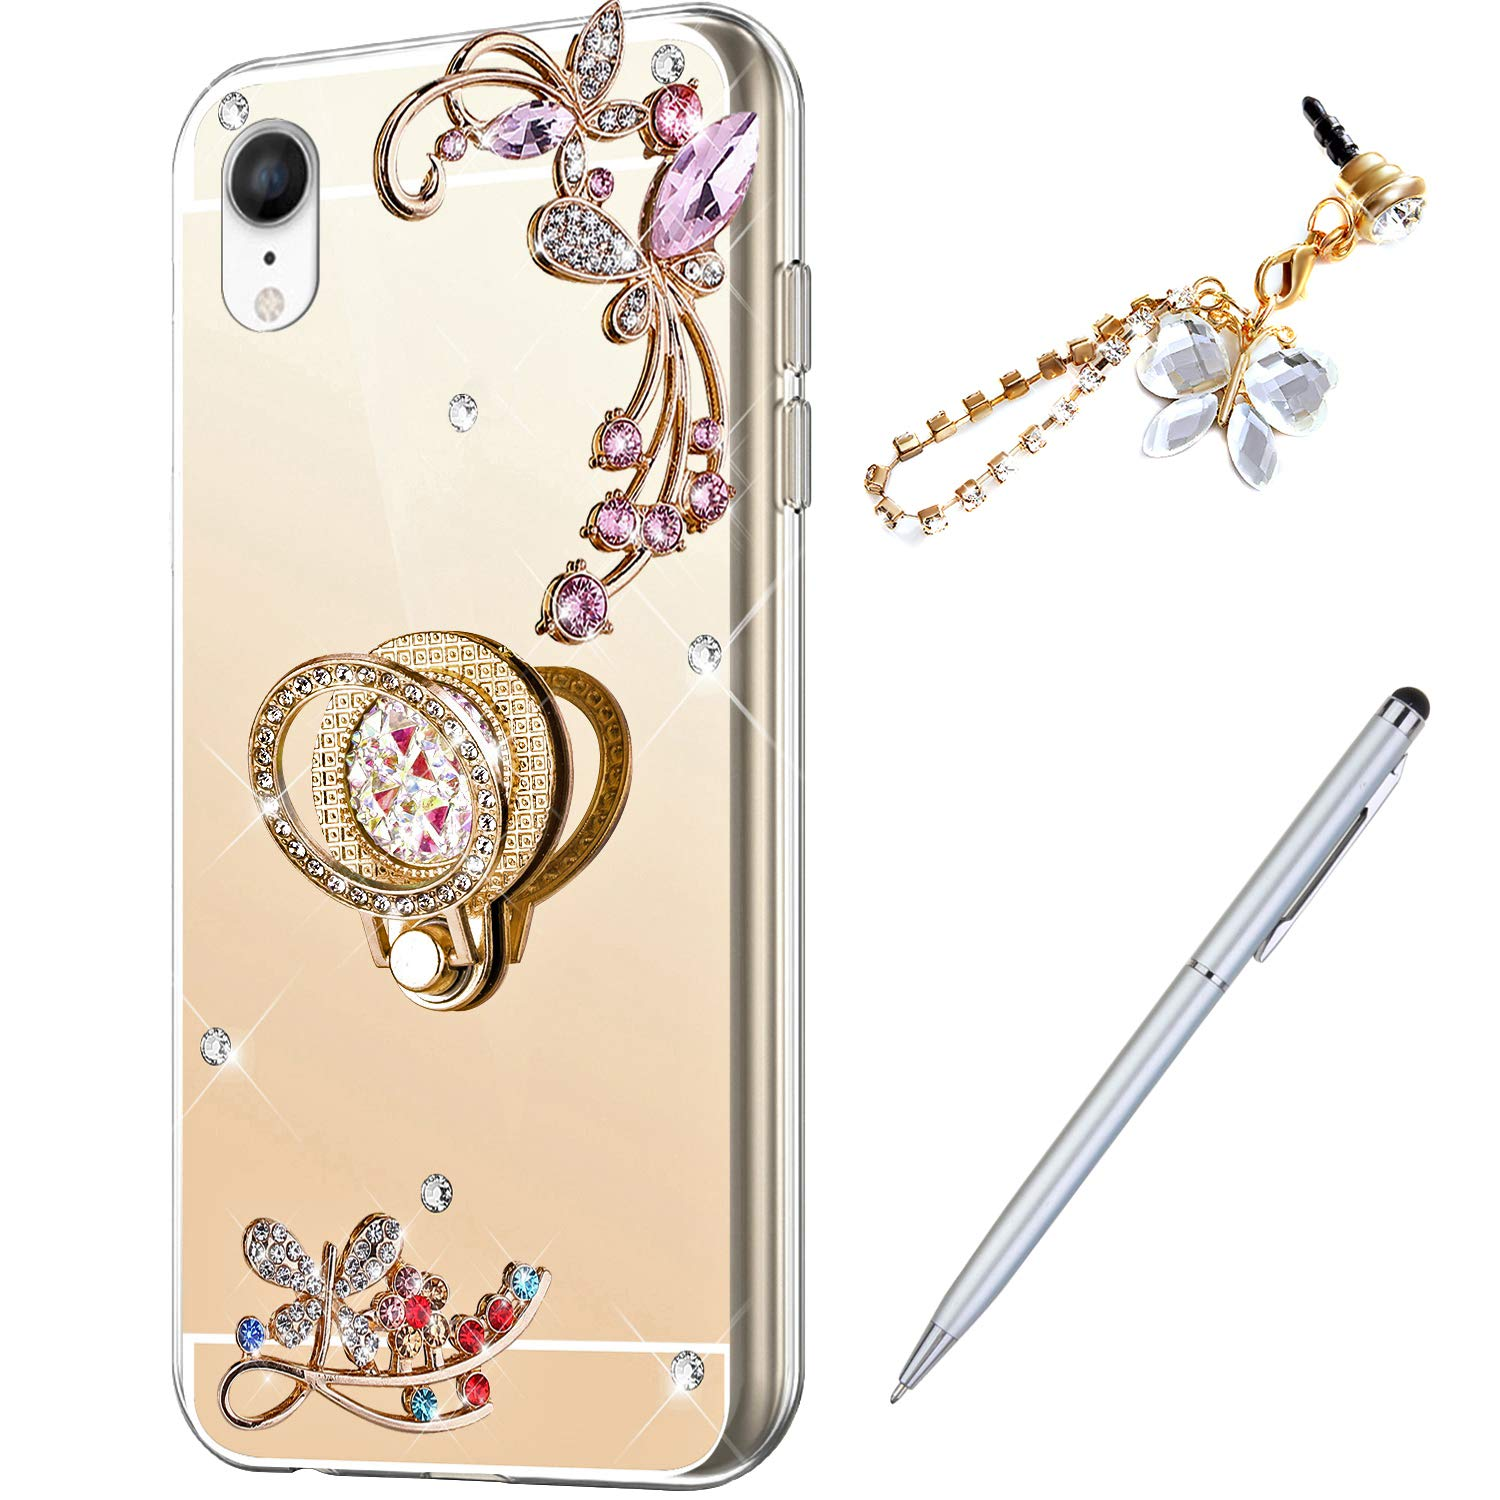 ikasus Case for iPhone XR Diamond Case,Crystal Inlaid diamond Butterfly Rhinestone Diamond Glitter Bling Mirror Back TPU Case & Ring Stand + Touch Pen Dust Plug for iPhone XR Mirror Case,Gold by ikasus